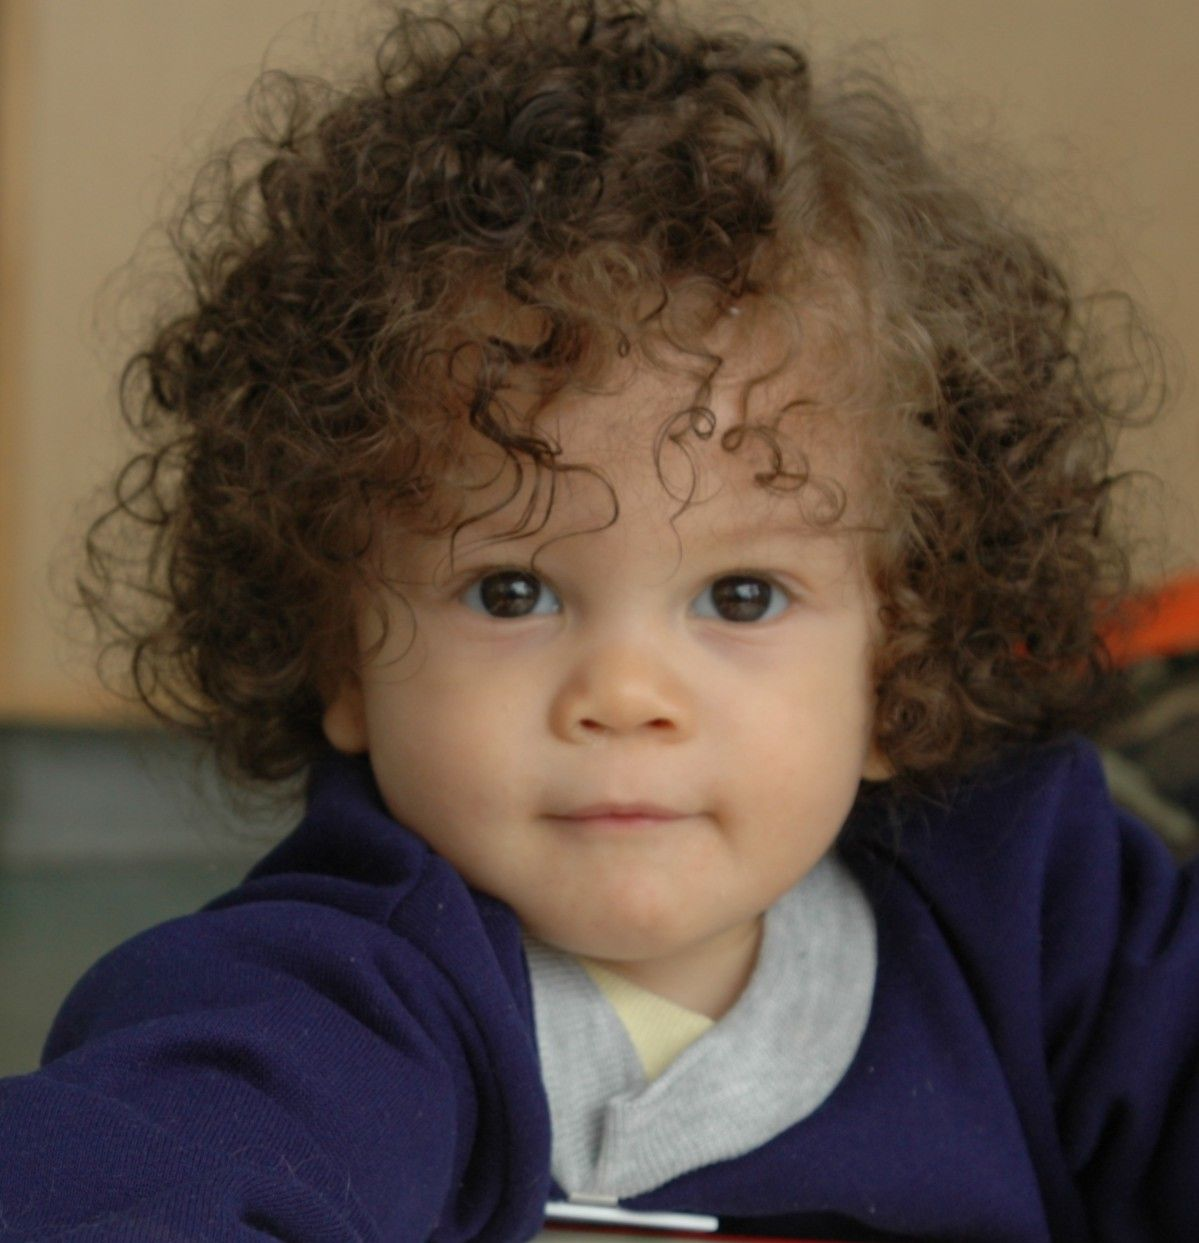 Toddler Curly Hairstyles Curly Haired Children Children Curly Hair World Culture